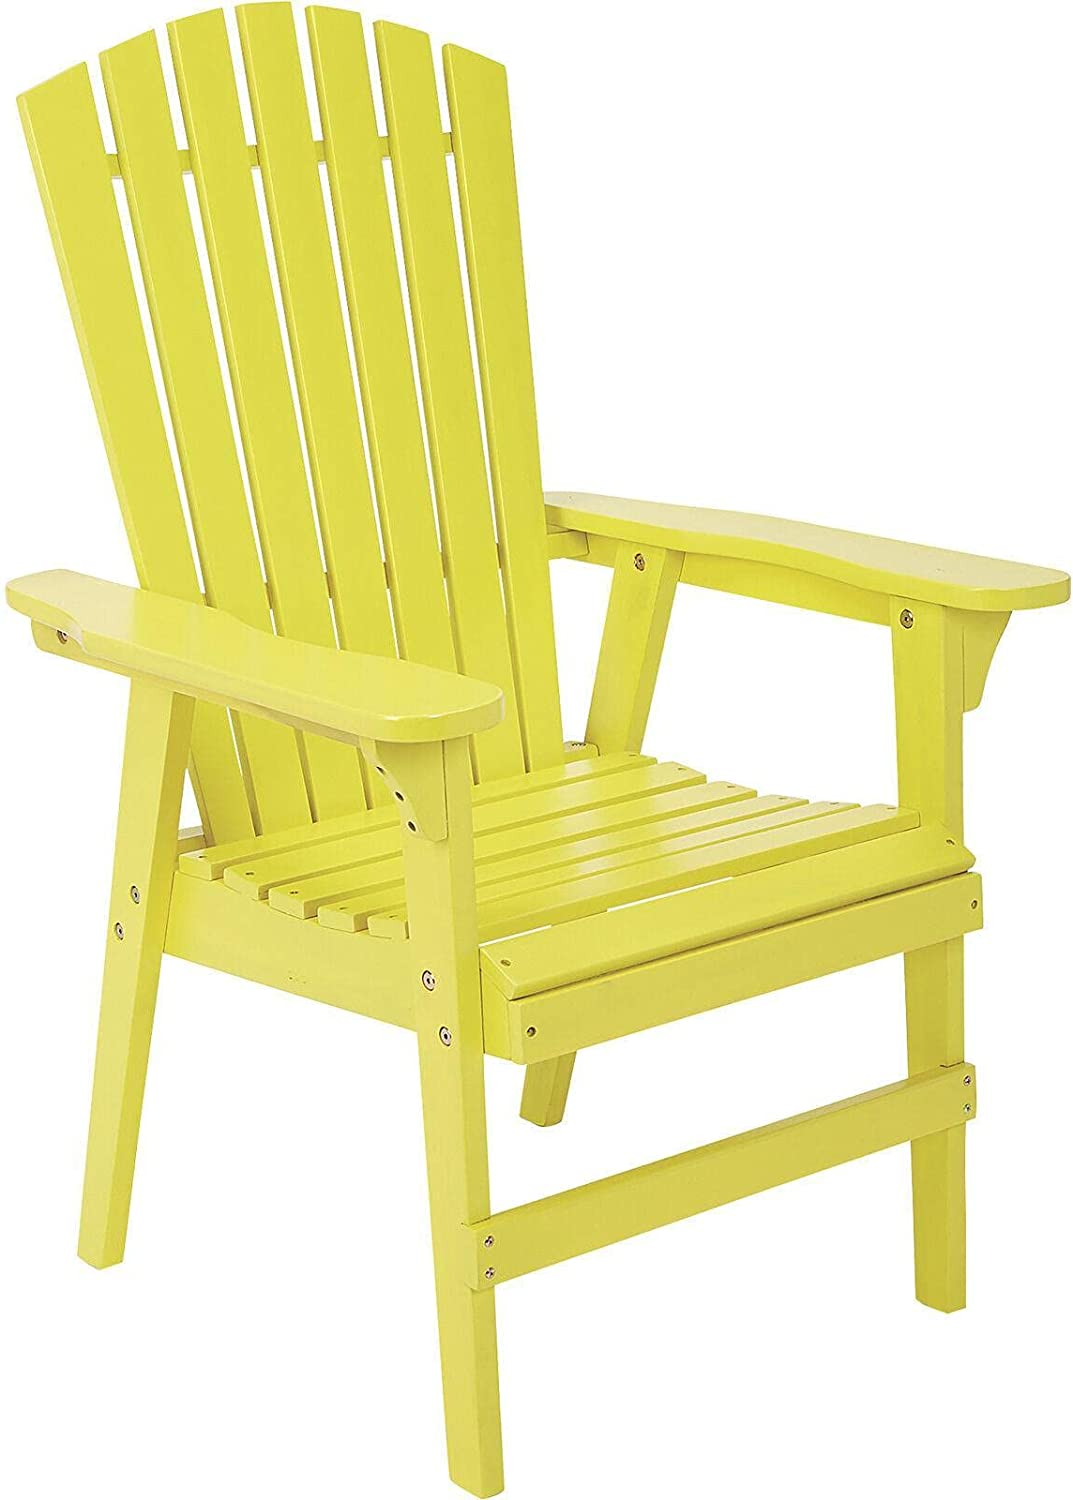 El Paso Mall Painted Wood Upright Chair - Fu Yellow Opening large release sale Patio Patio-Dining-Chairs